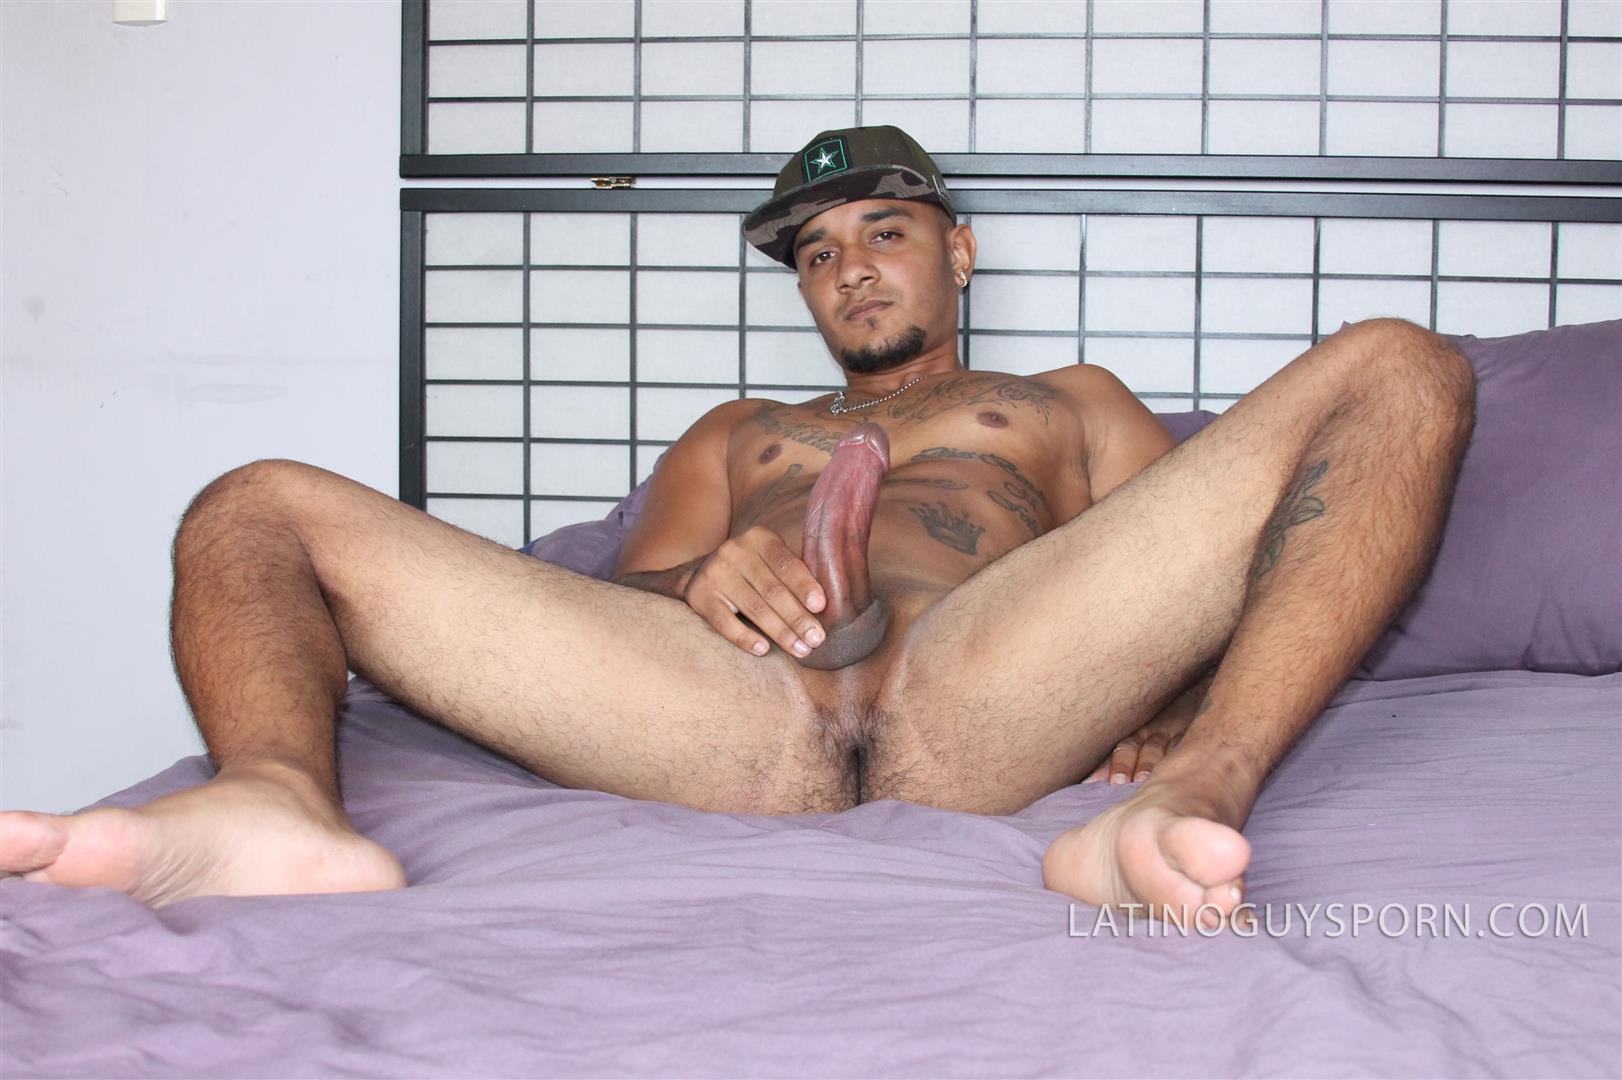 image Nude gay amateur mexican guys masturbating